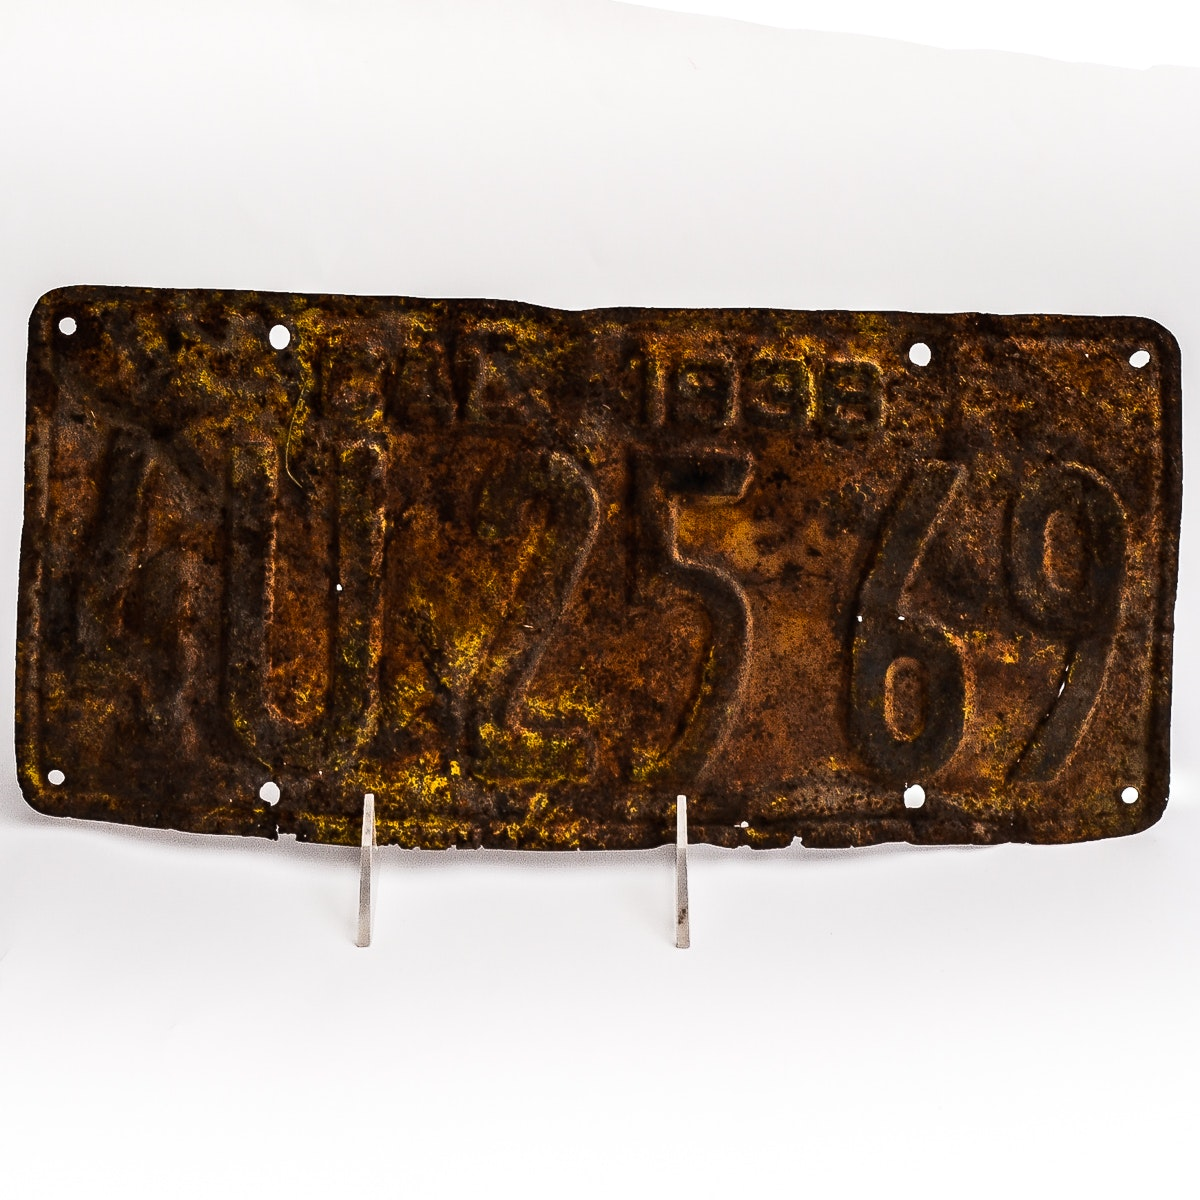 Vintage 1938 California License Plate